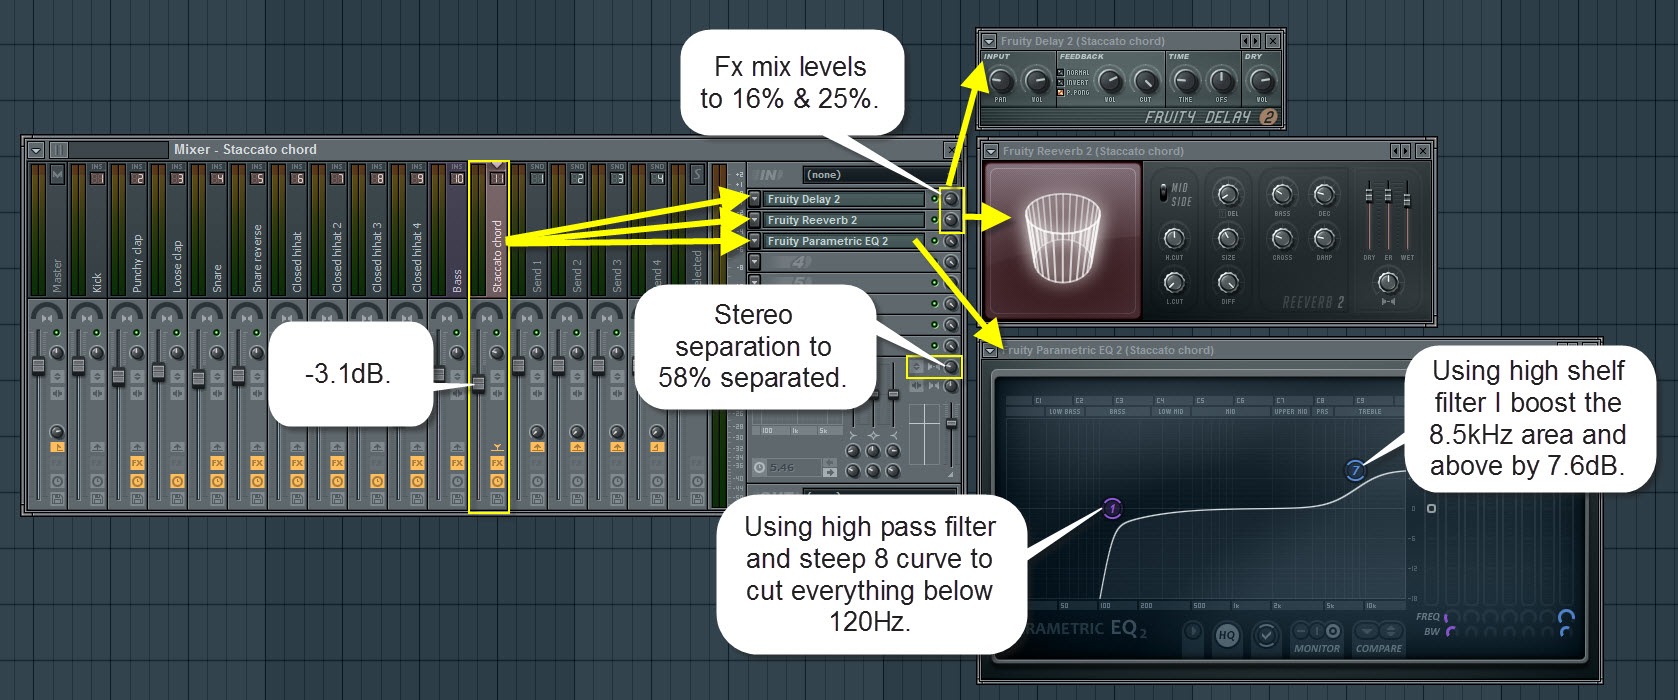 Mixer Settings For Staccato Chord